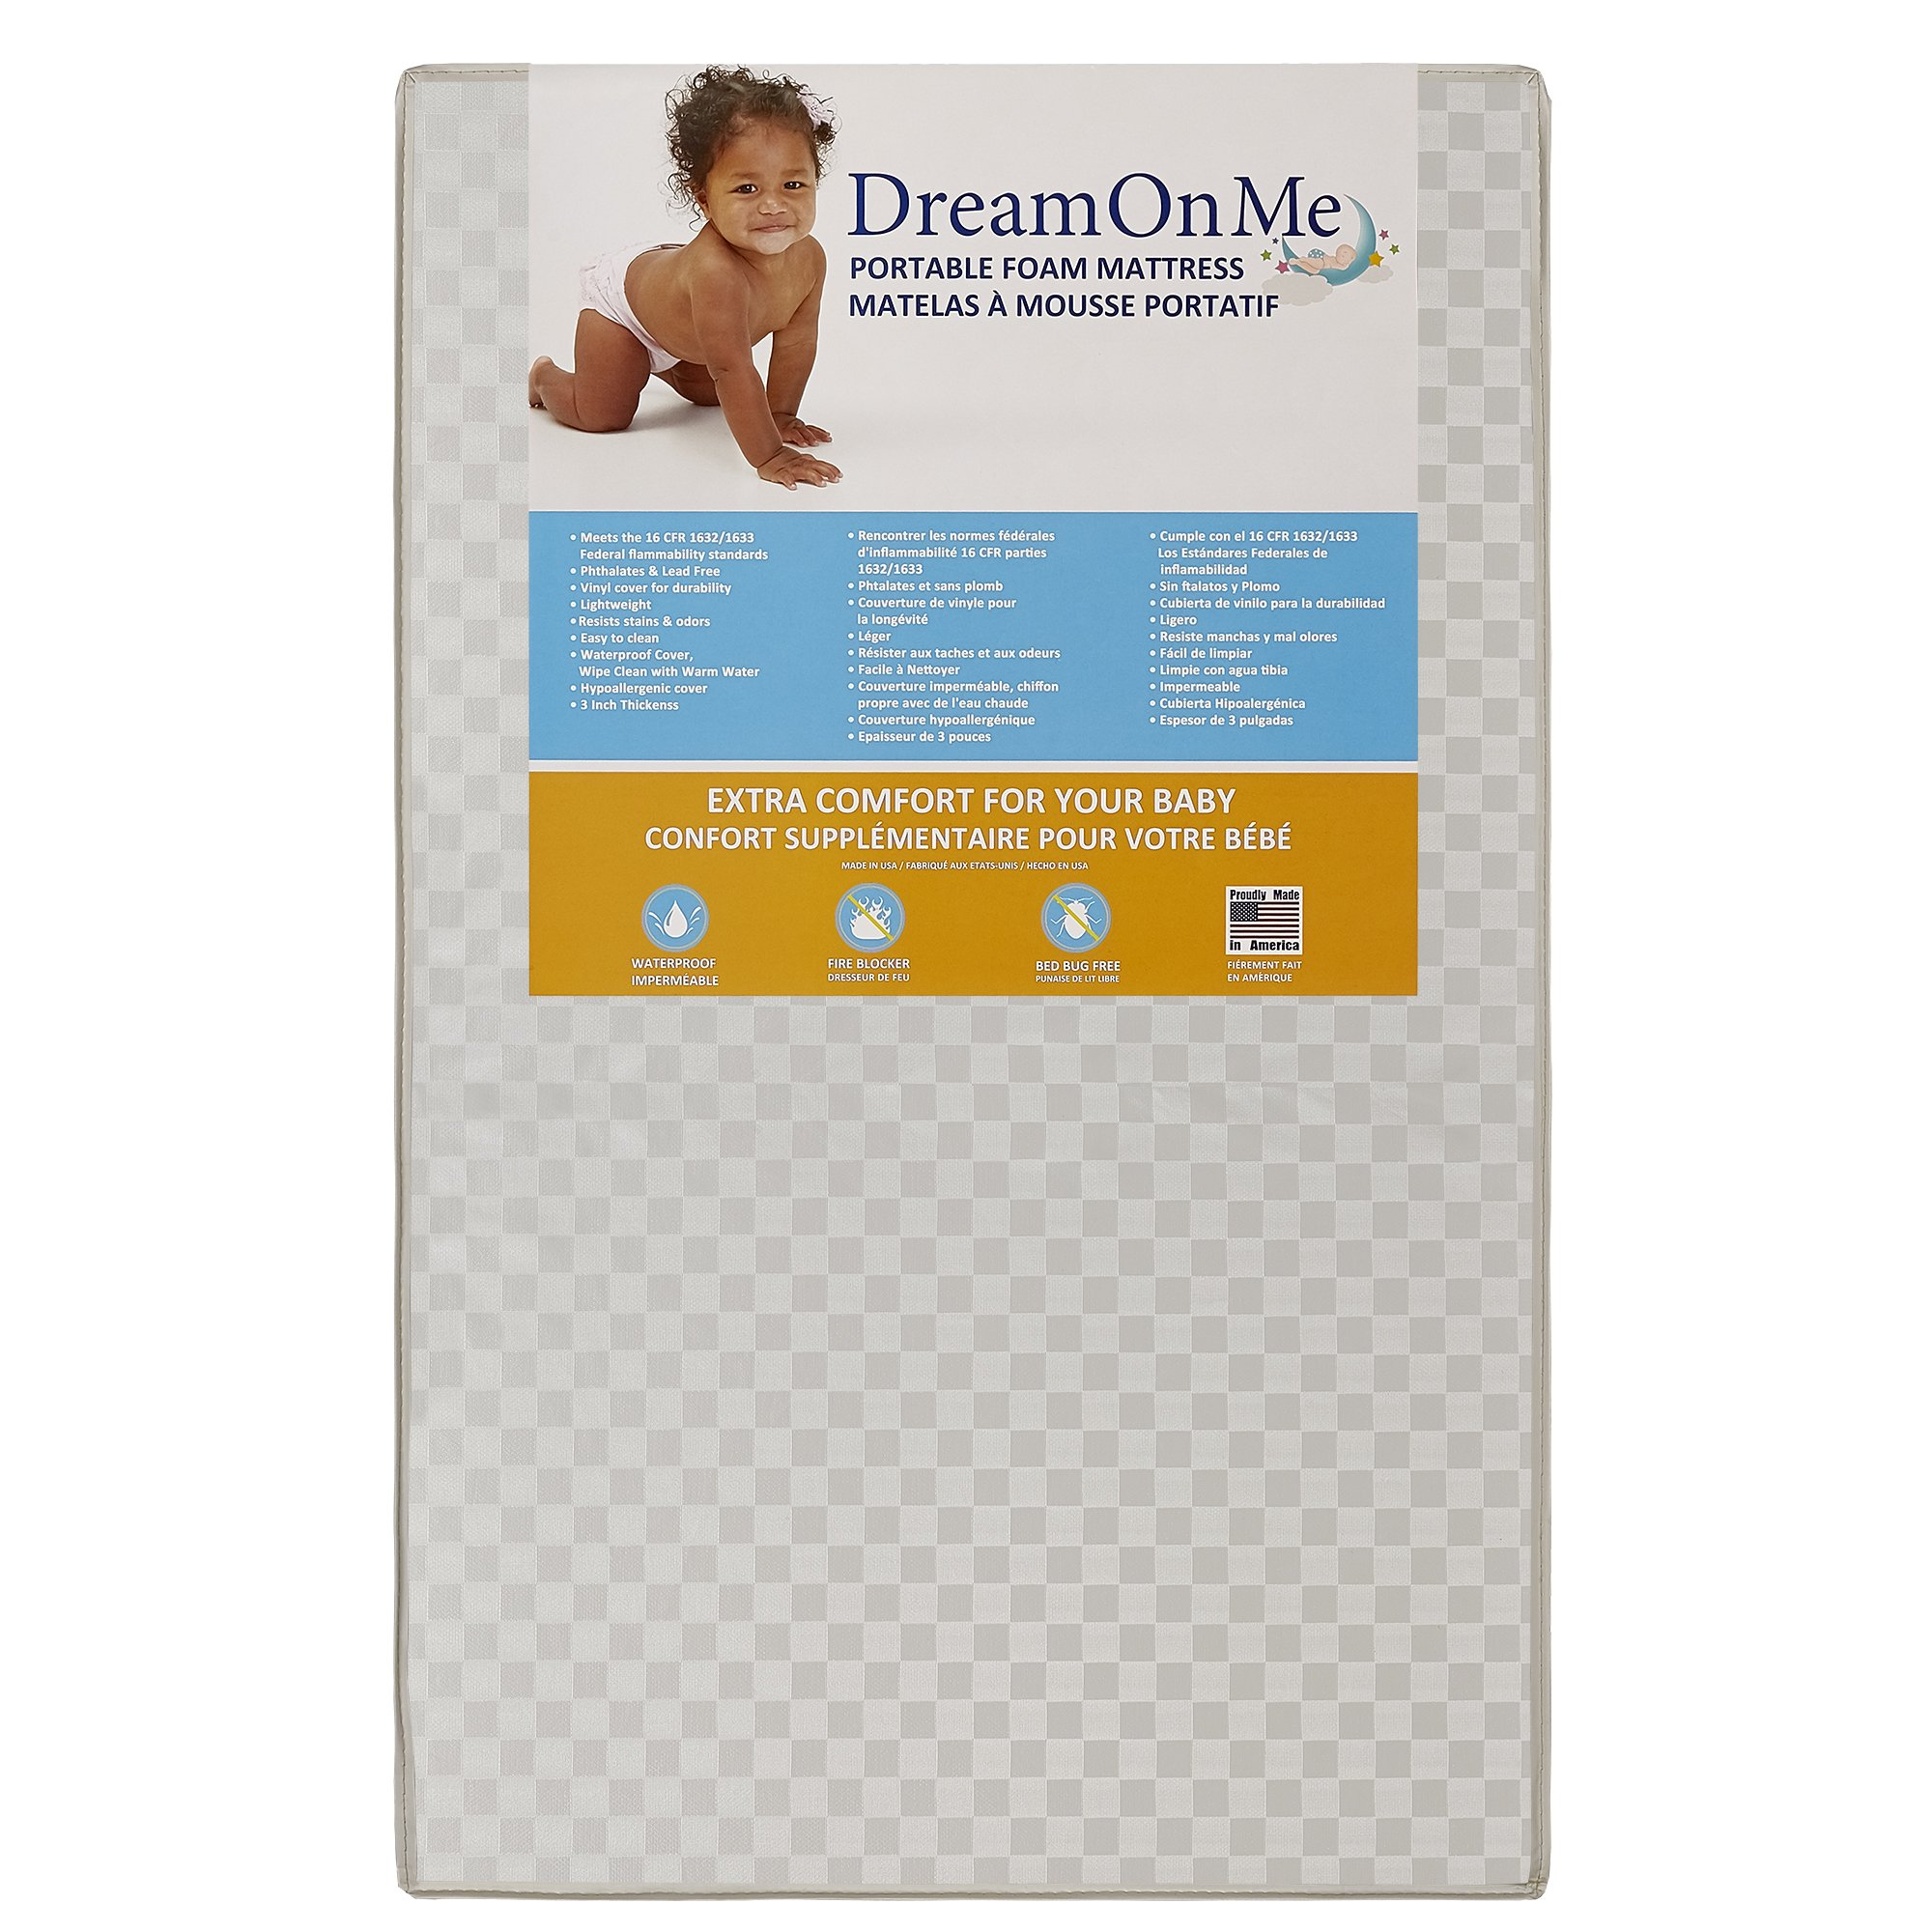 Dream On Me 3 Portable Non-full size crib mattress, White Vinyl